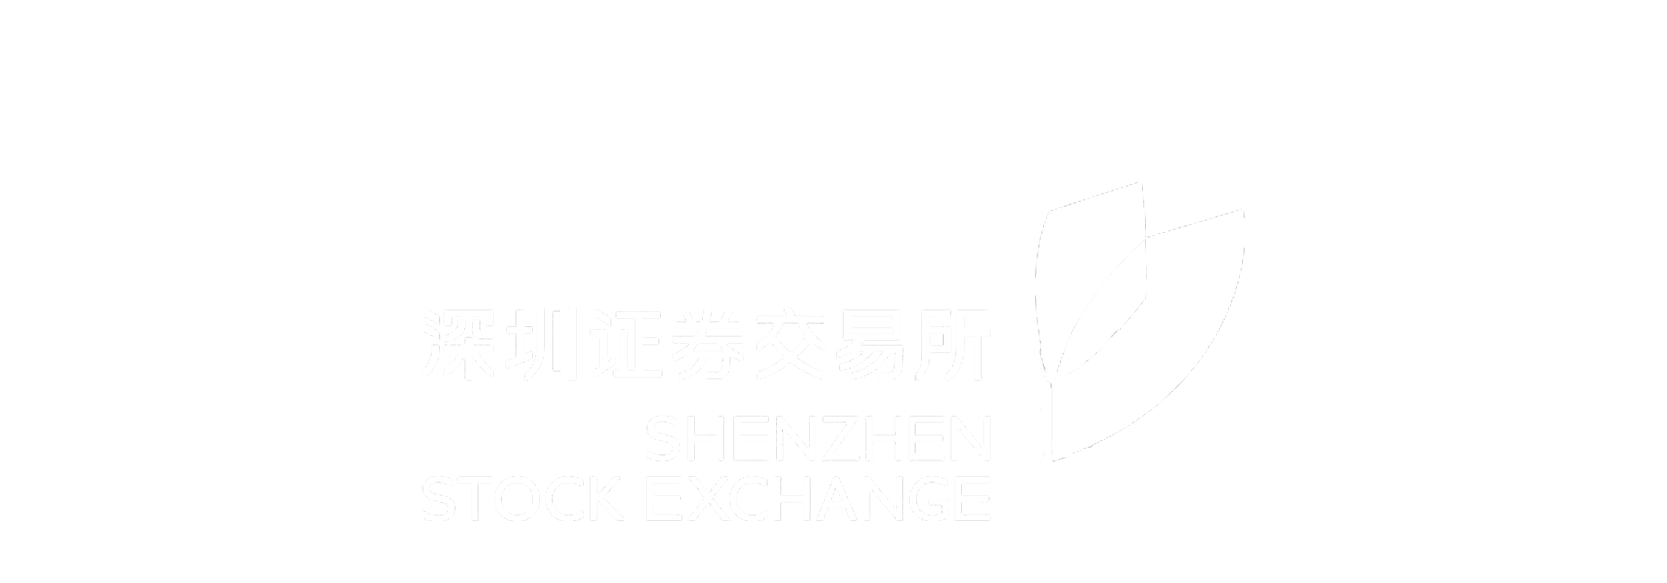 Shehzhen Stock Exchange